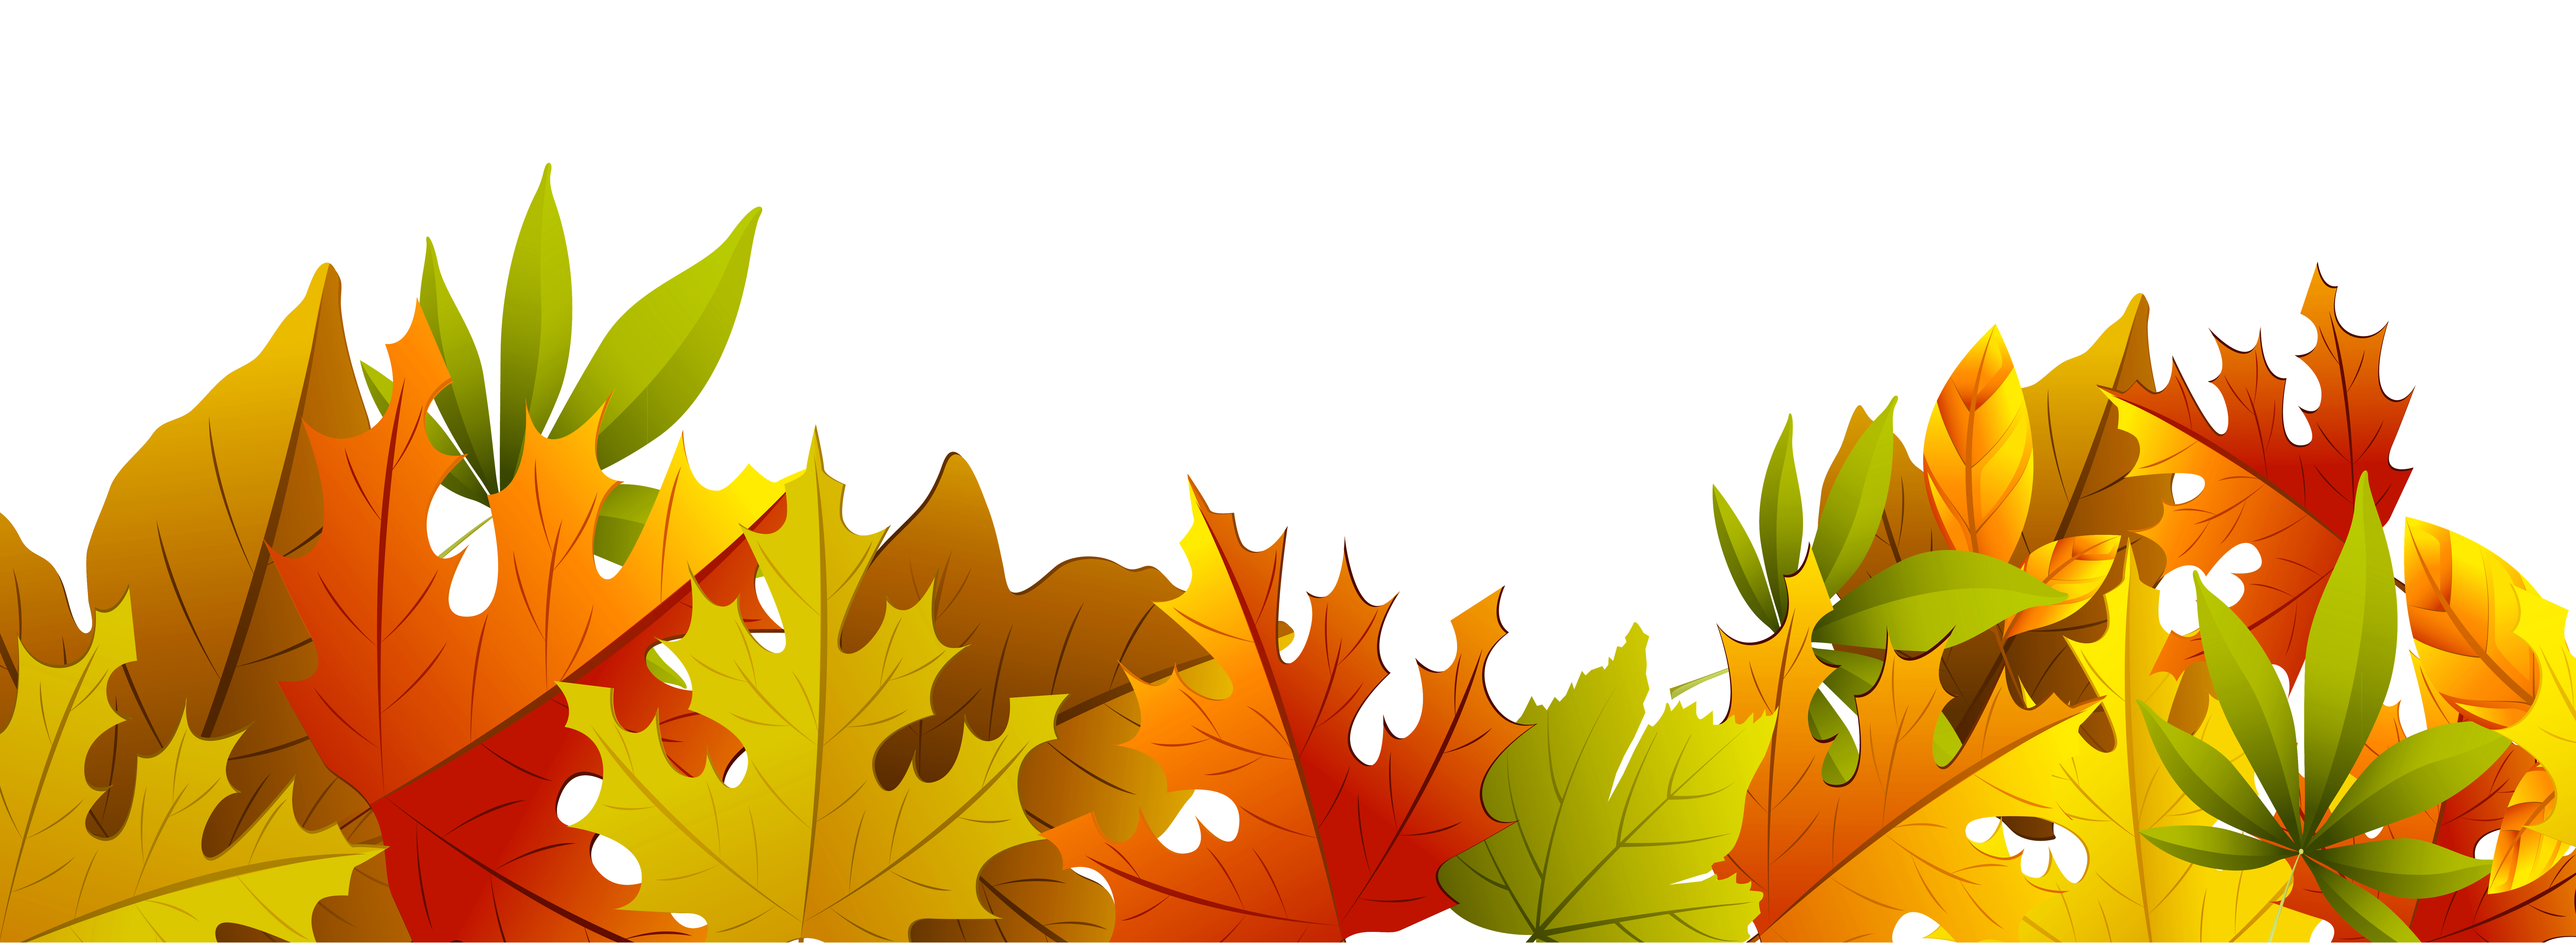 Autumn Leaves PNG Images Transparent Free Download - Autumn PNG